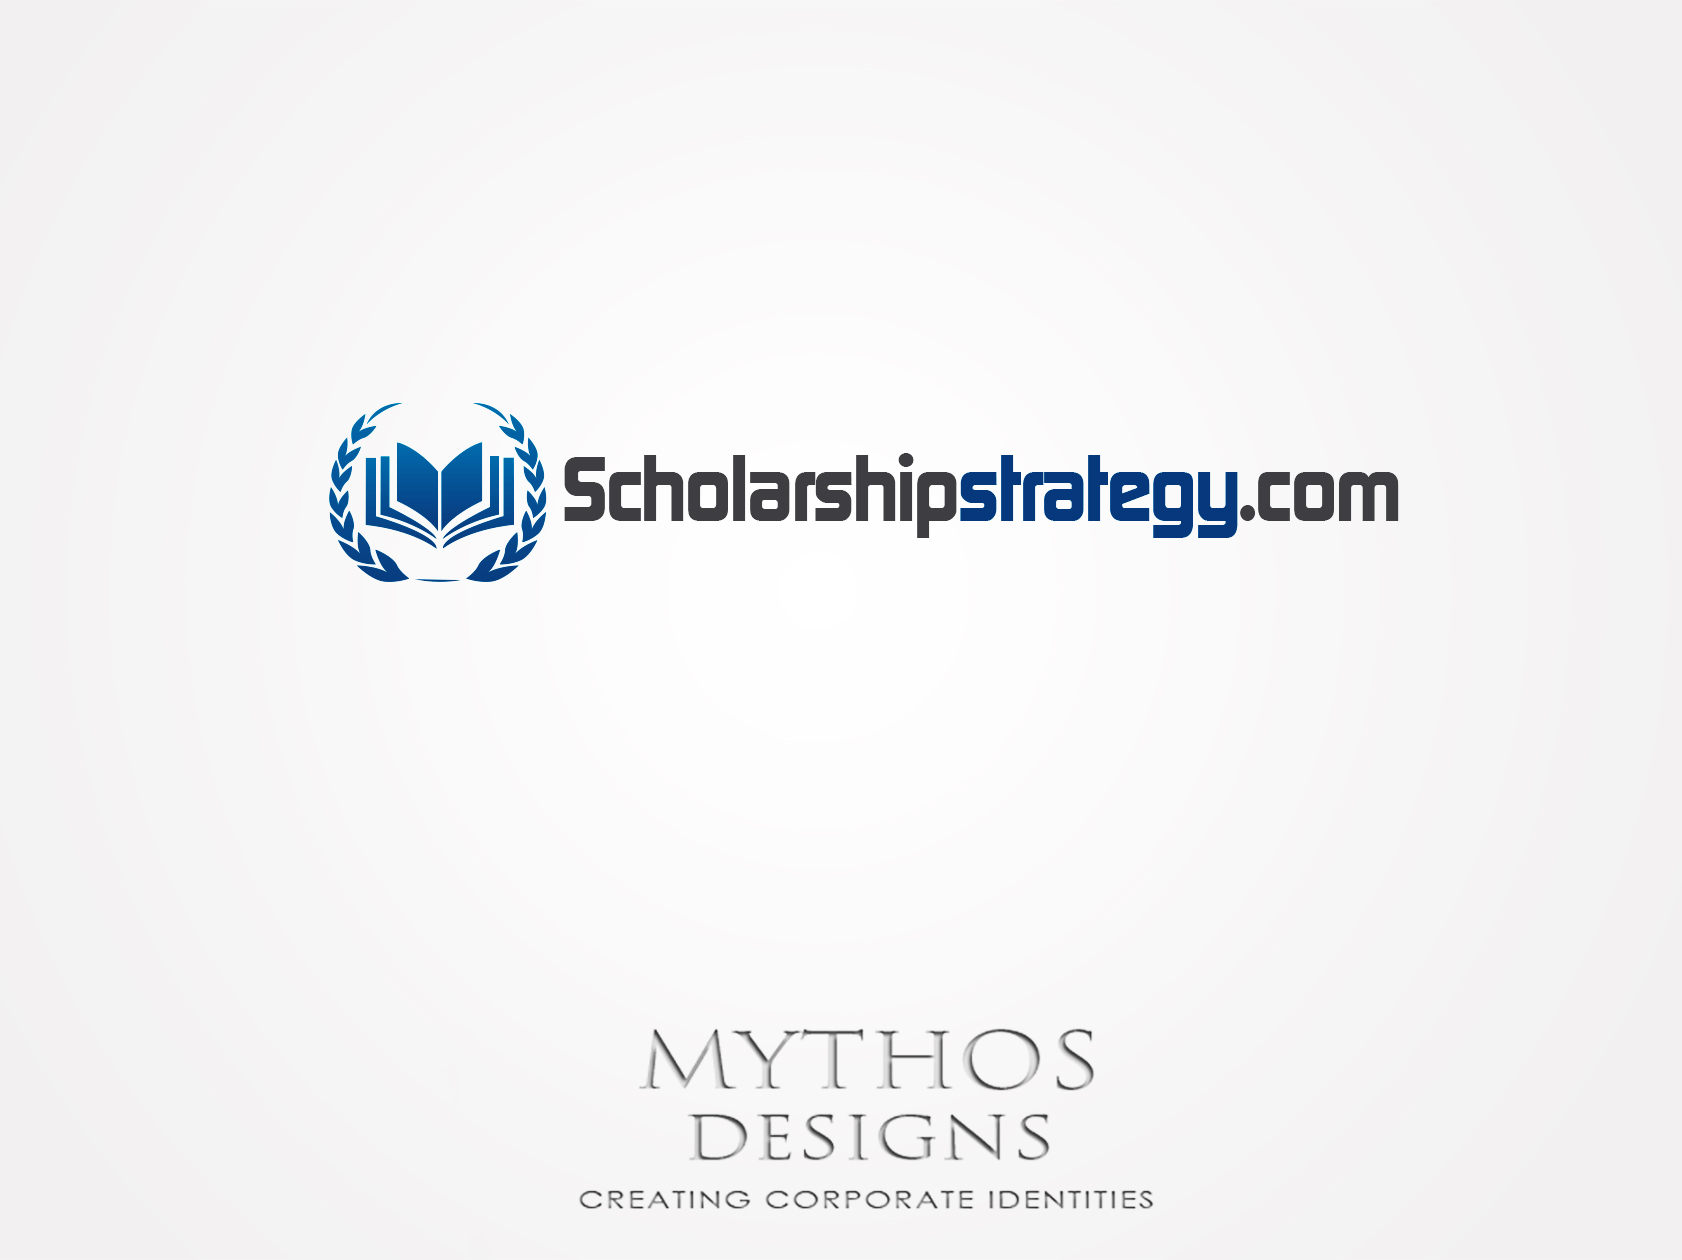 Logo Design by Mythos Designs - Entry No. 53 in the Logo Design Contest Captivating Logo Design for Scholarshipstrategy.com.